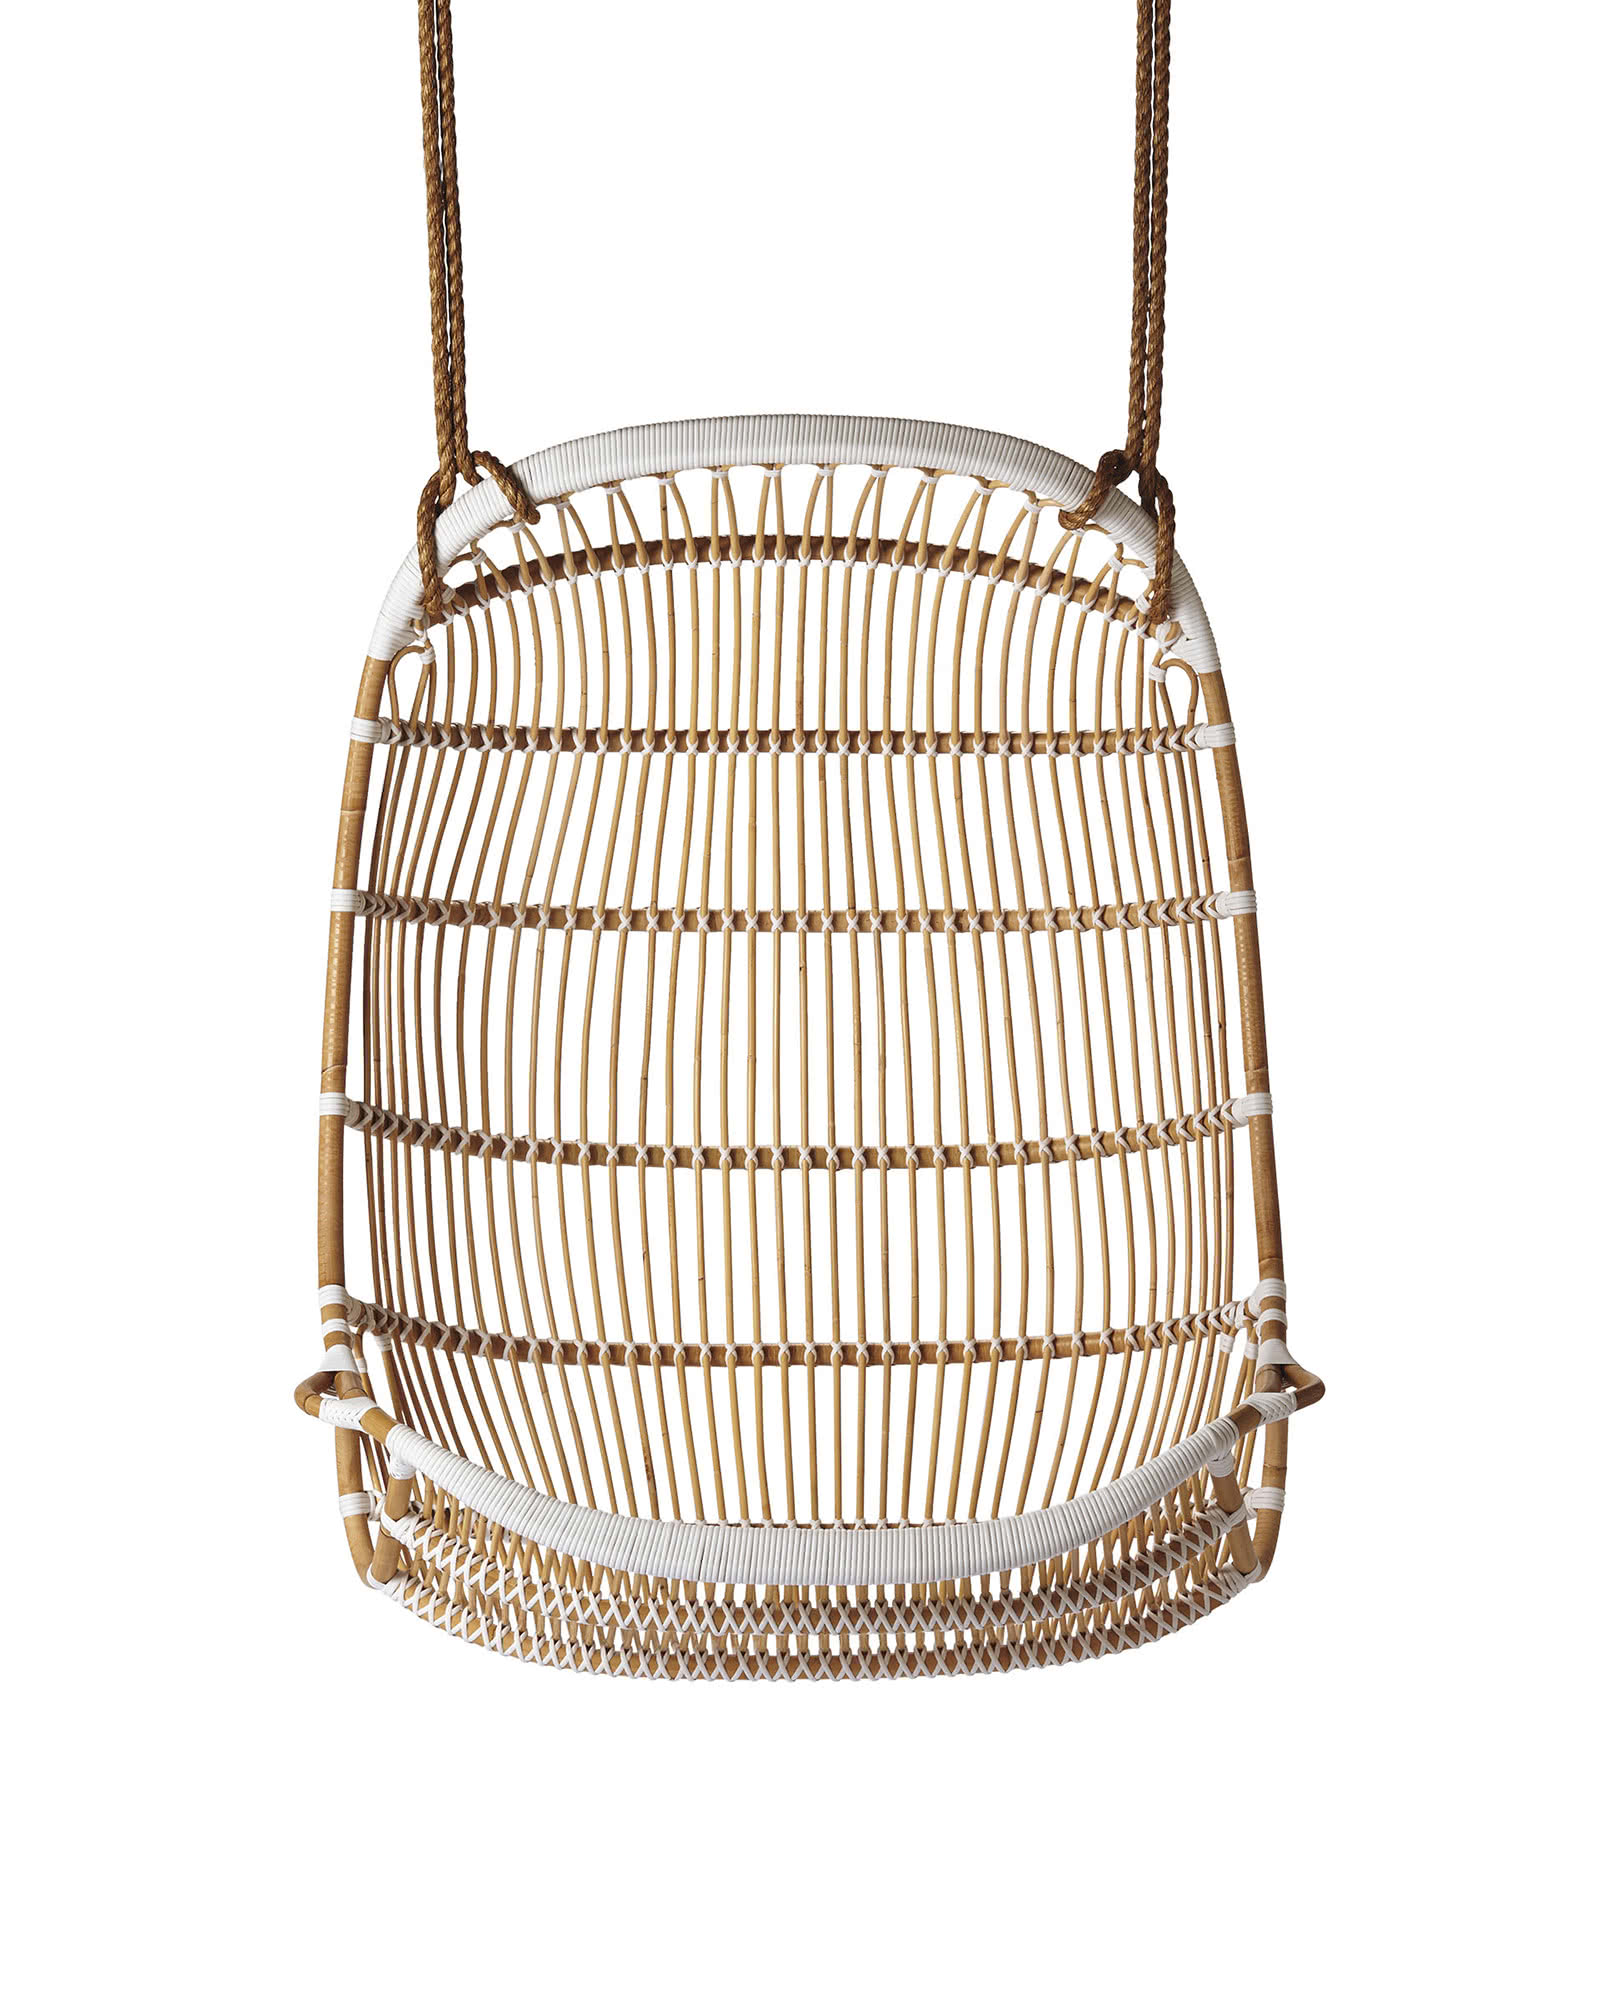 Double hanging rattan chair chairs serena and lily for Hanging chair images